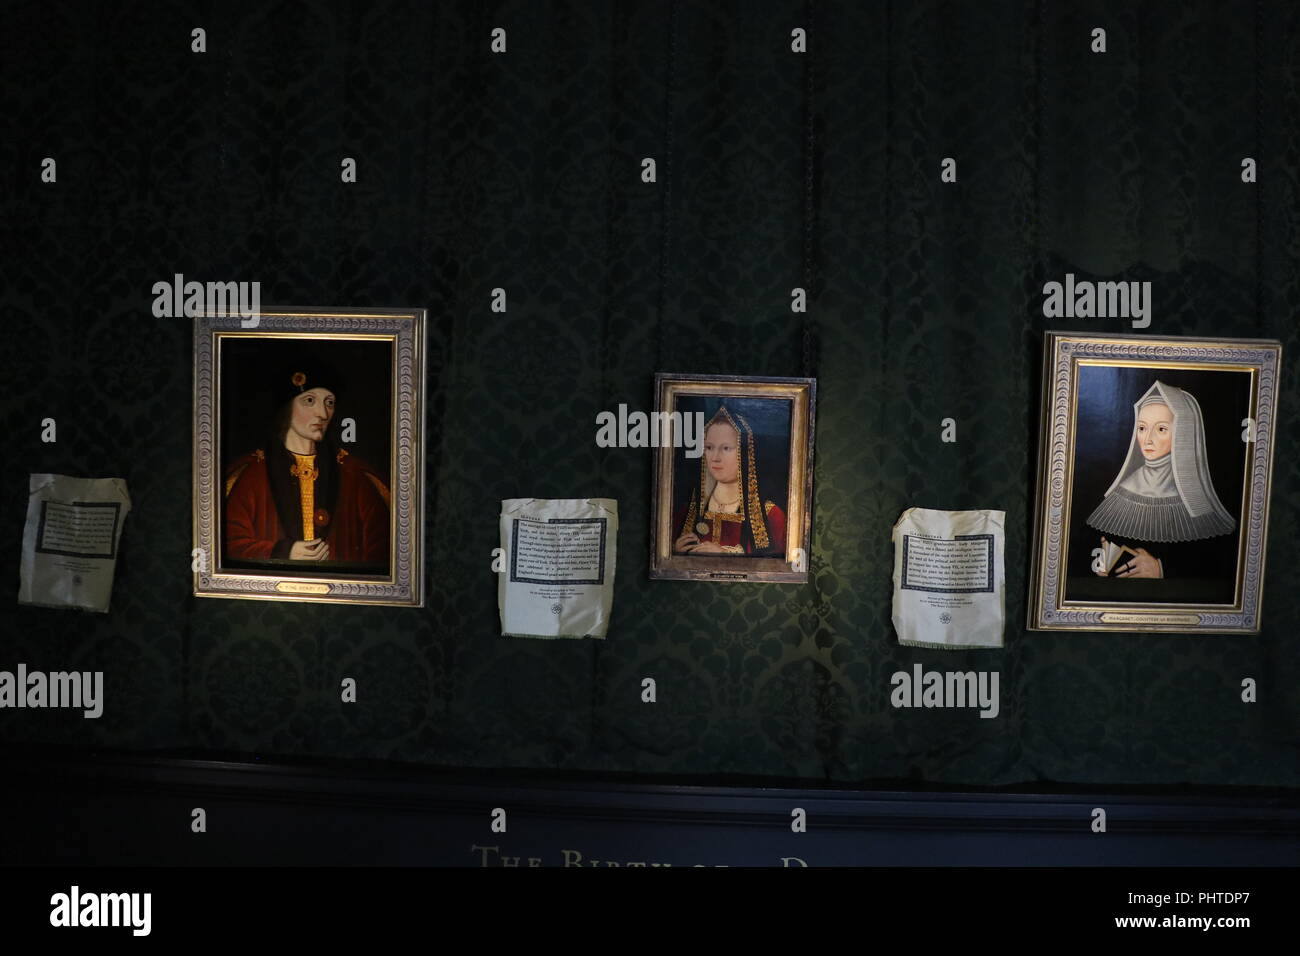 Hampton Court Palace 2018 - Stock Image